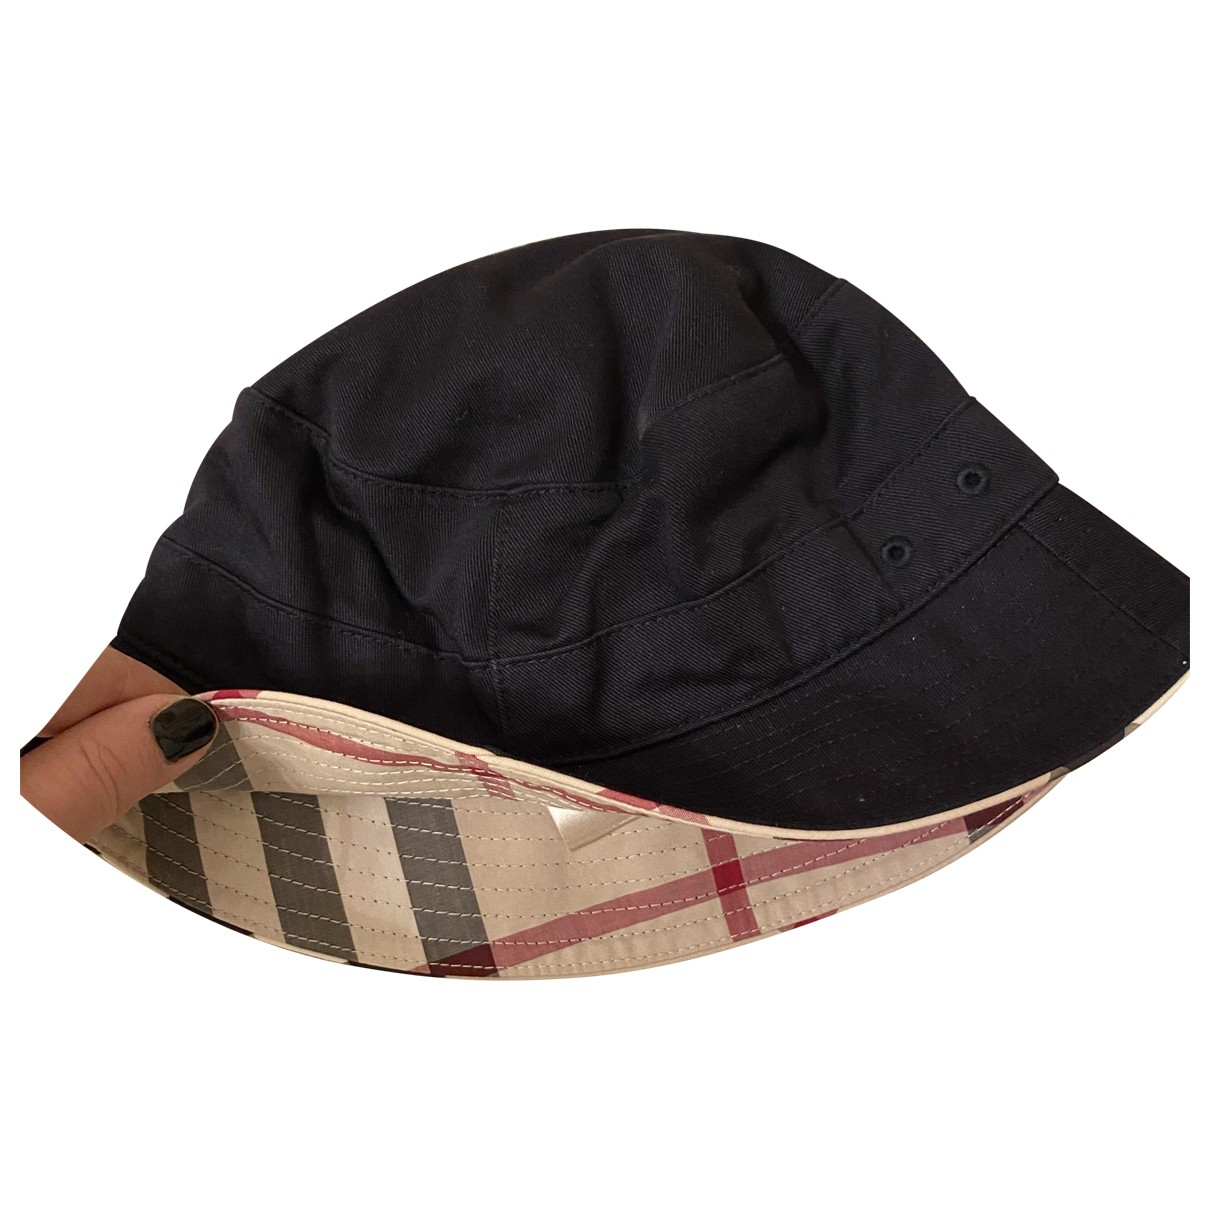 Burberry \N Black Cotton hat & Gloves for Kids \N